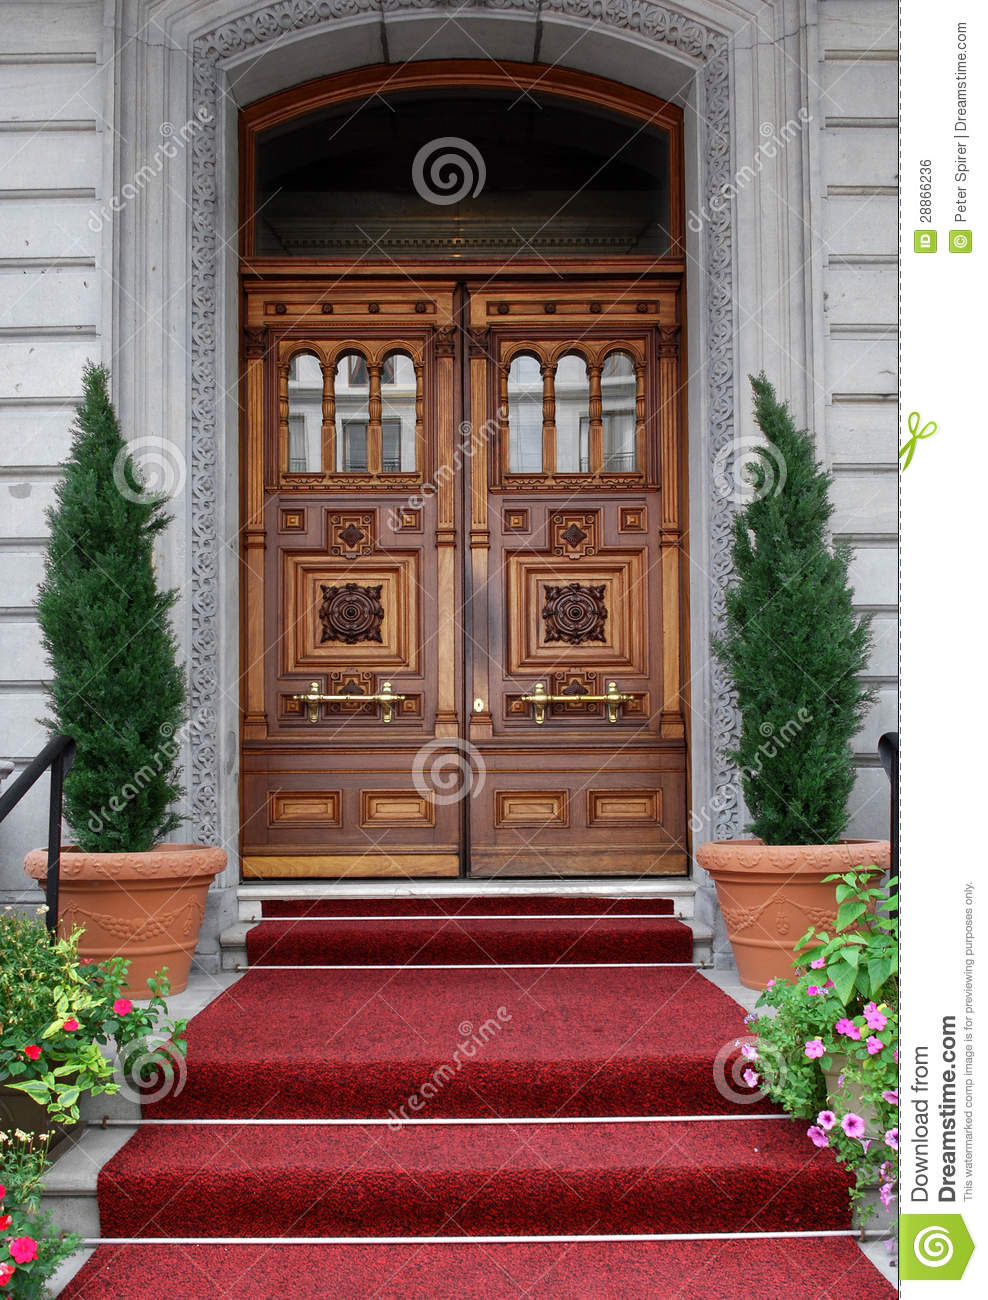 Elegant front door royalty free stock image image 28866236 for Elegant front doors